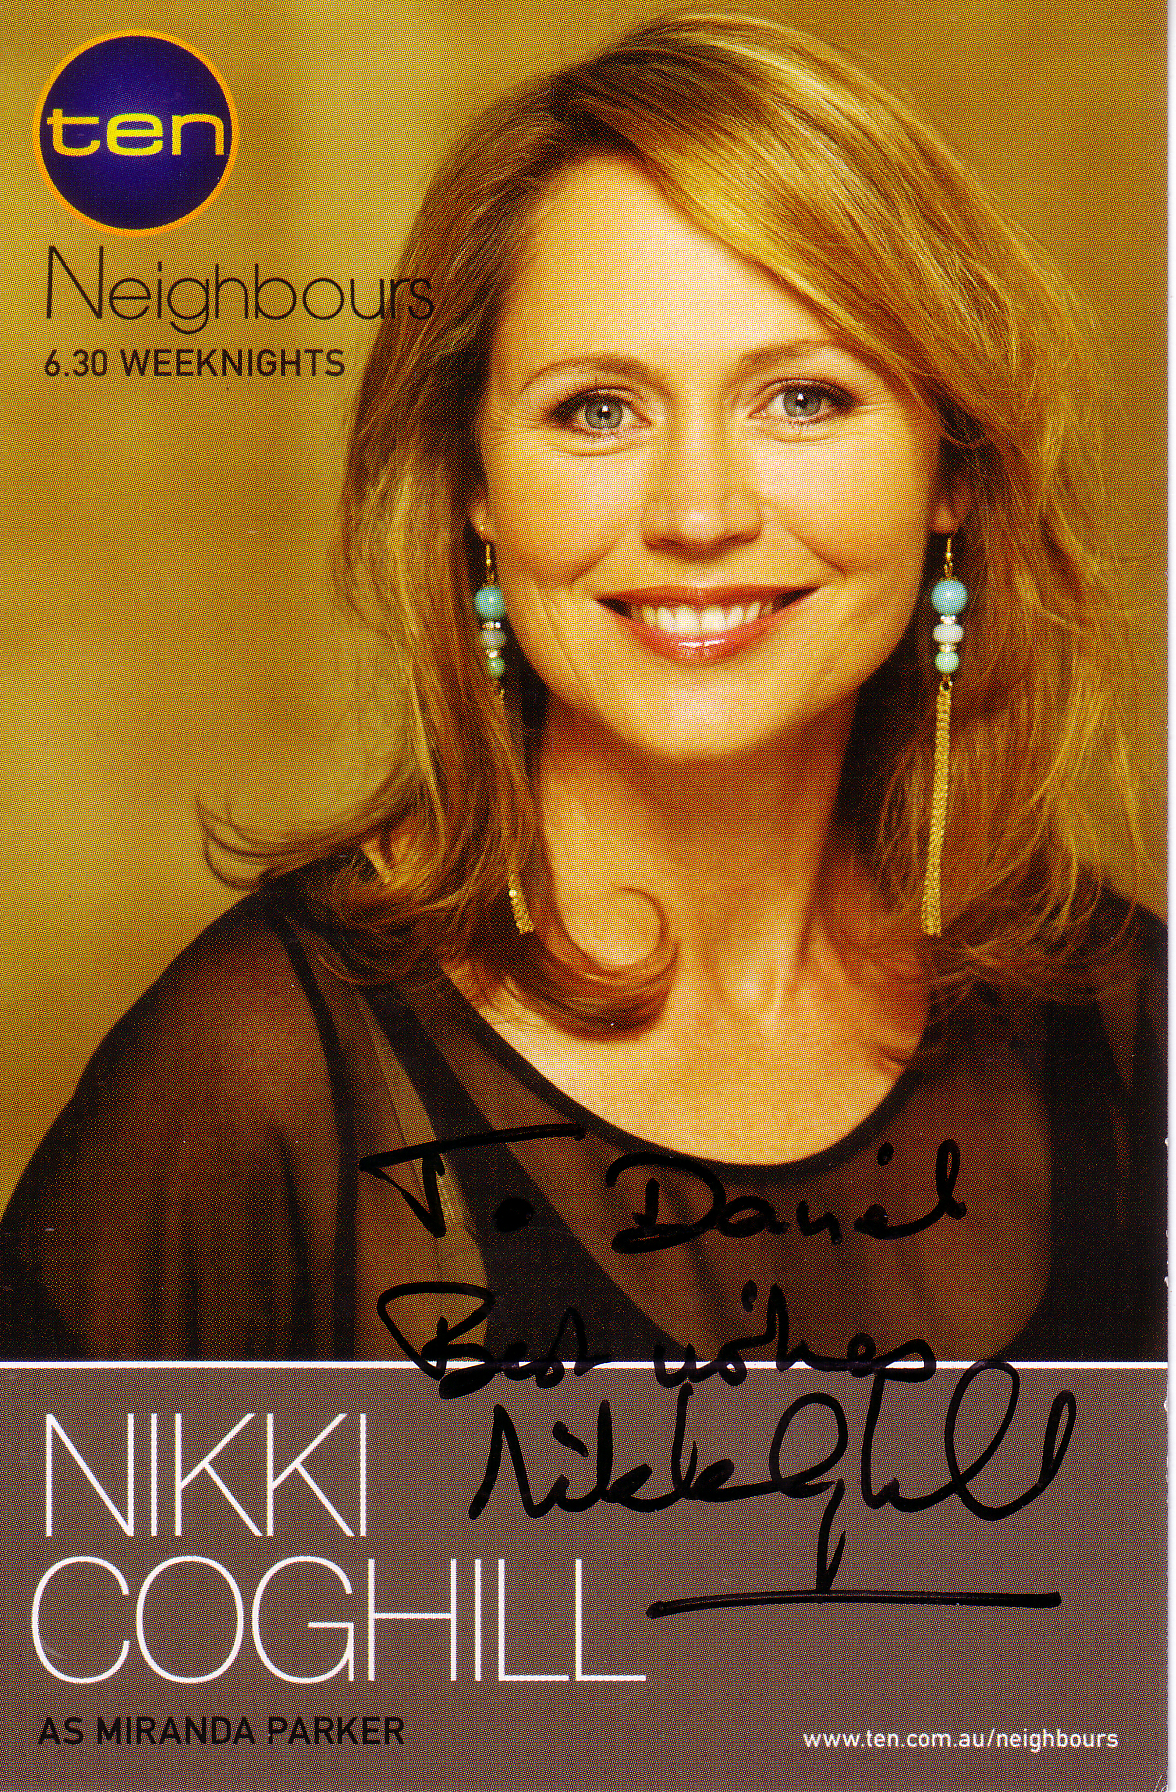 Discussion on this topic: Linda Cook (actress), nikki-coghill/